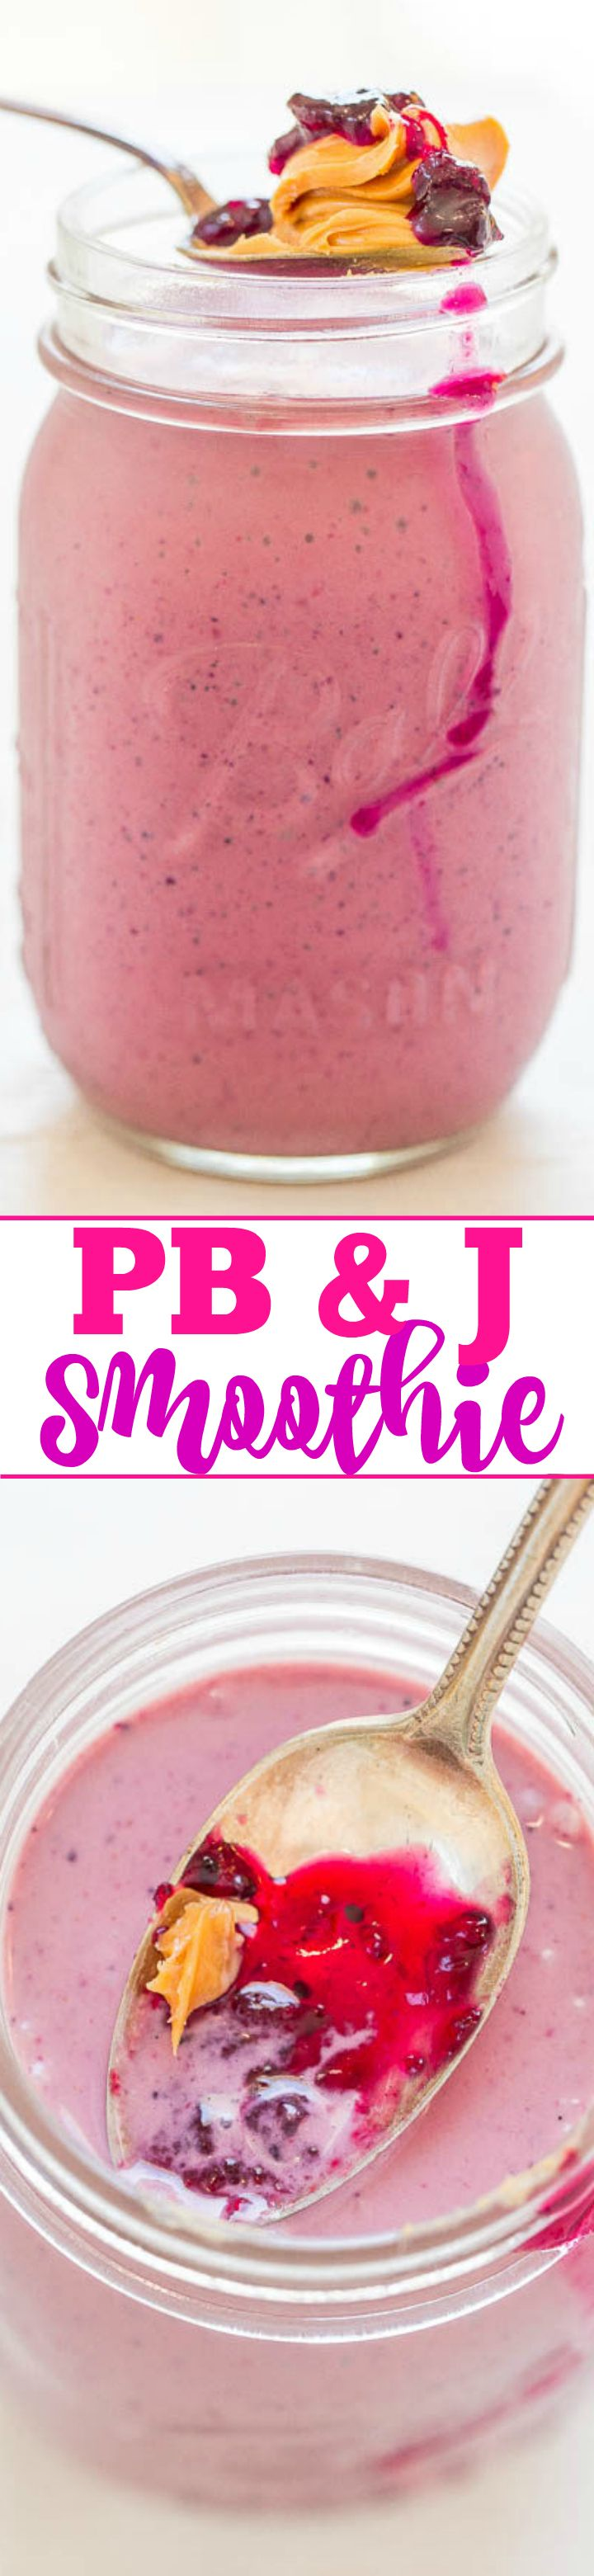 PB & J Smoothie - A perfect PB & J in drinkable form!! Smooth, creamy, satisfying, EASY, and healthy!! You're going to LOVE this version of a PB & J!!